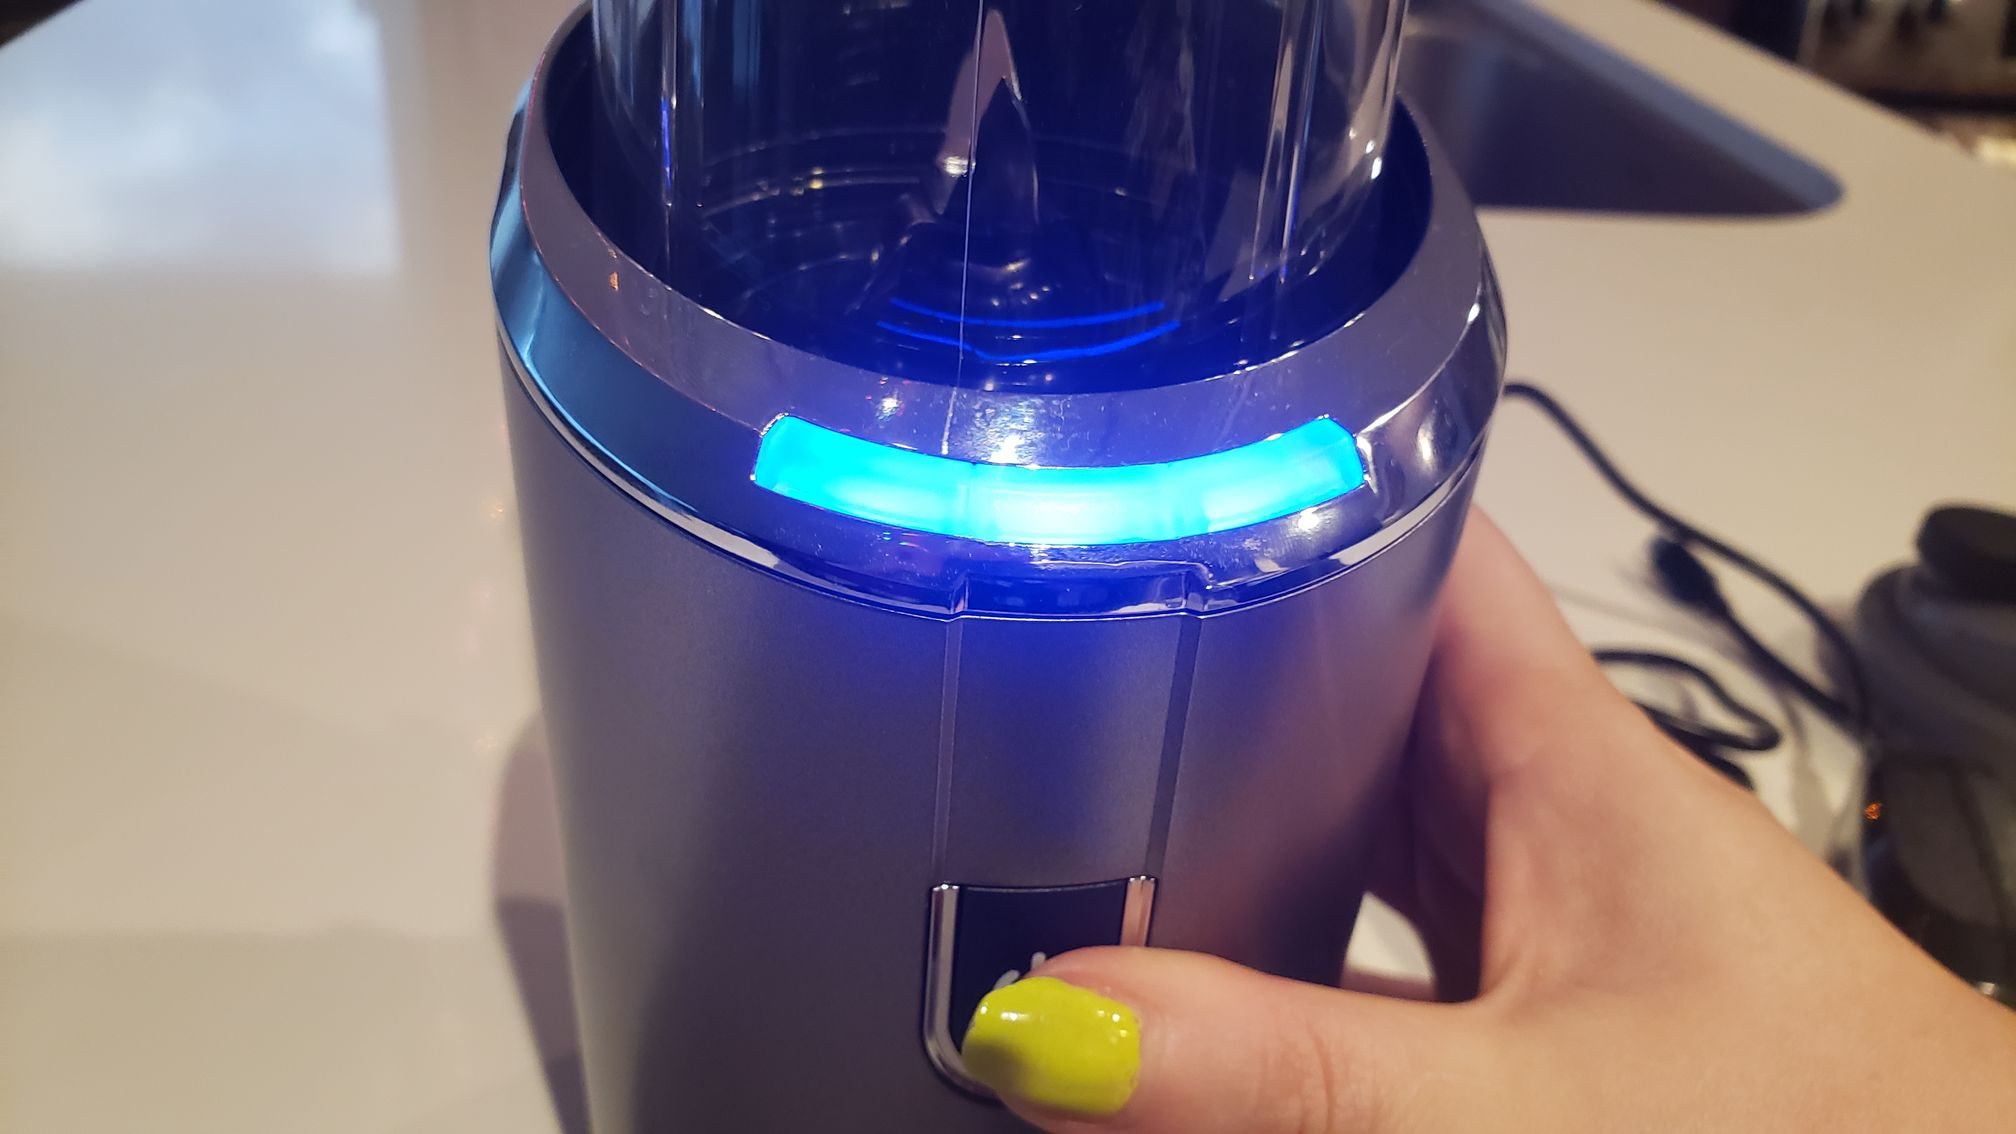 image of the blender's 3 LED all glowing, indicating full battery